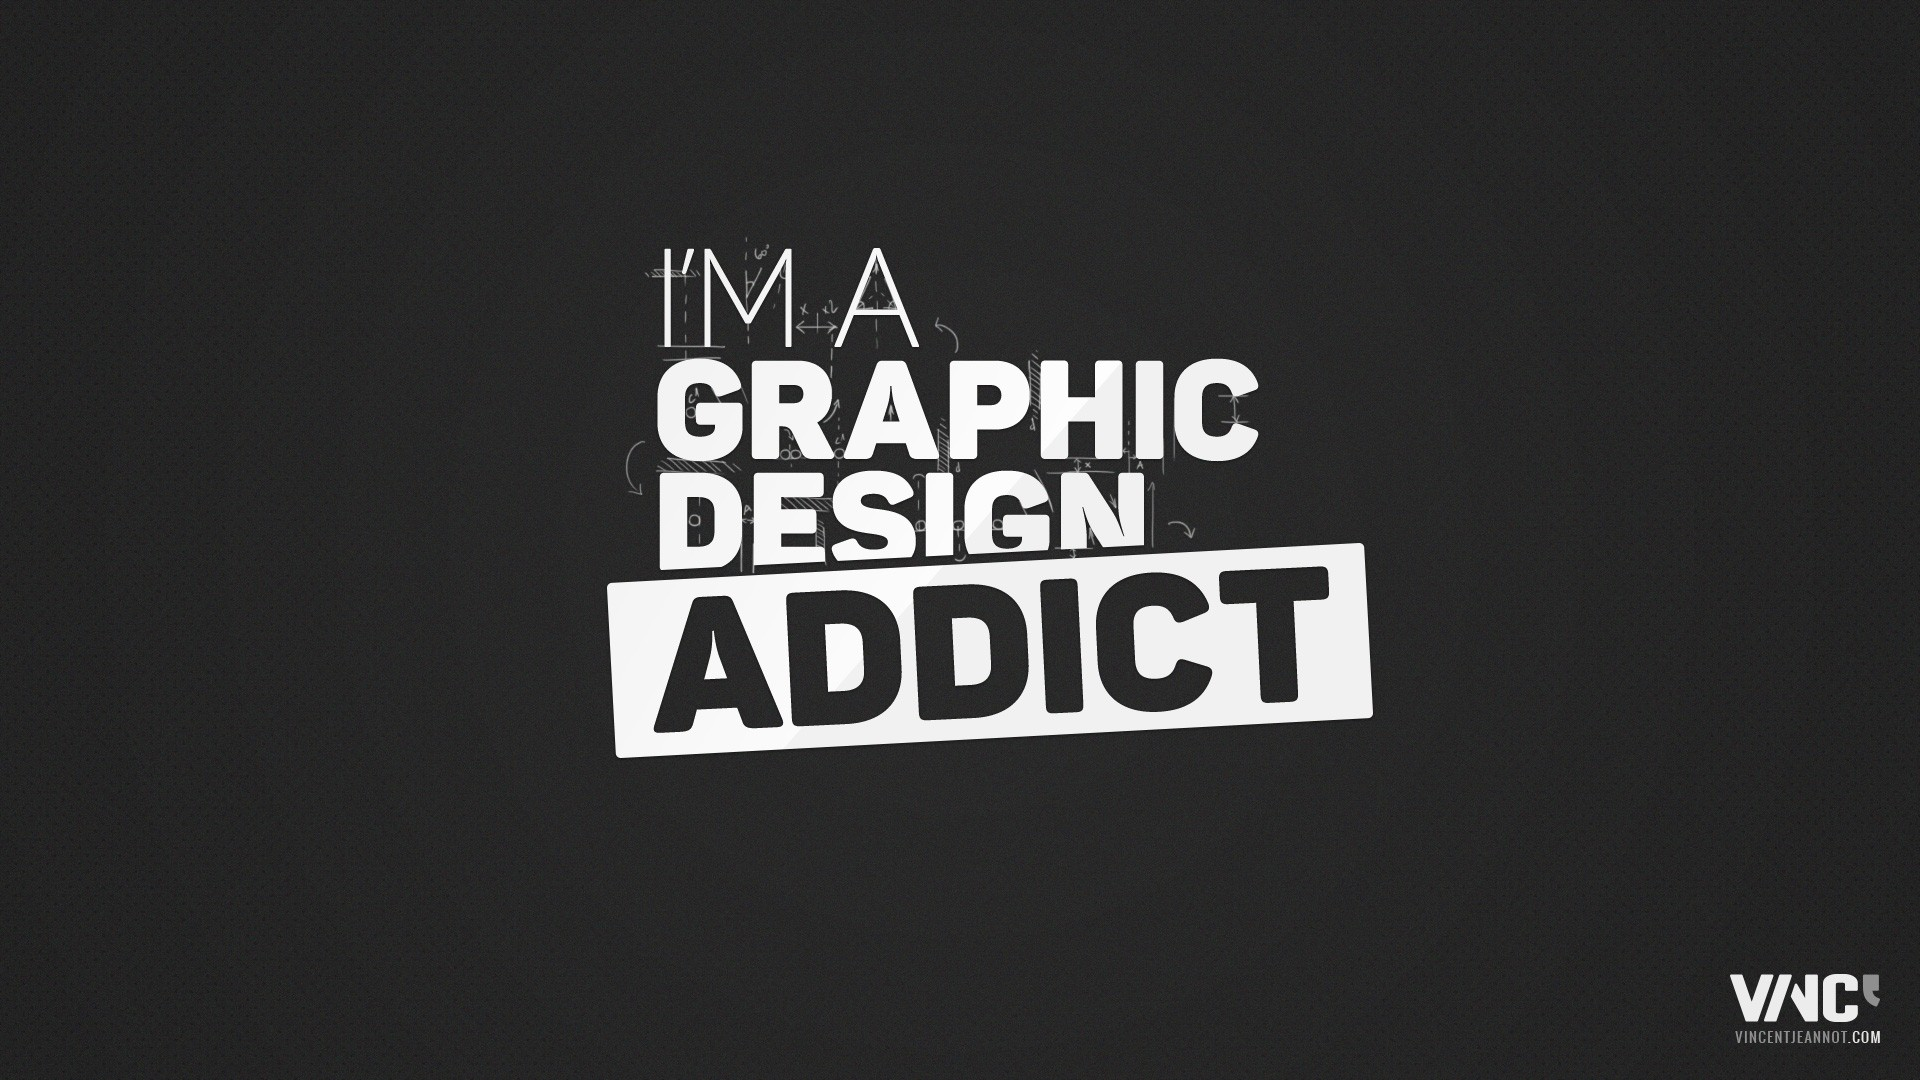 I Am A Graphic Design Addict, HD Typography, 4k Wallpapers, Images, Backgrounds, Photos and Pictures